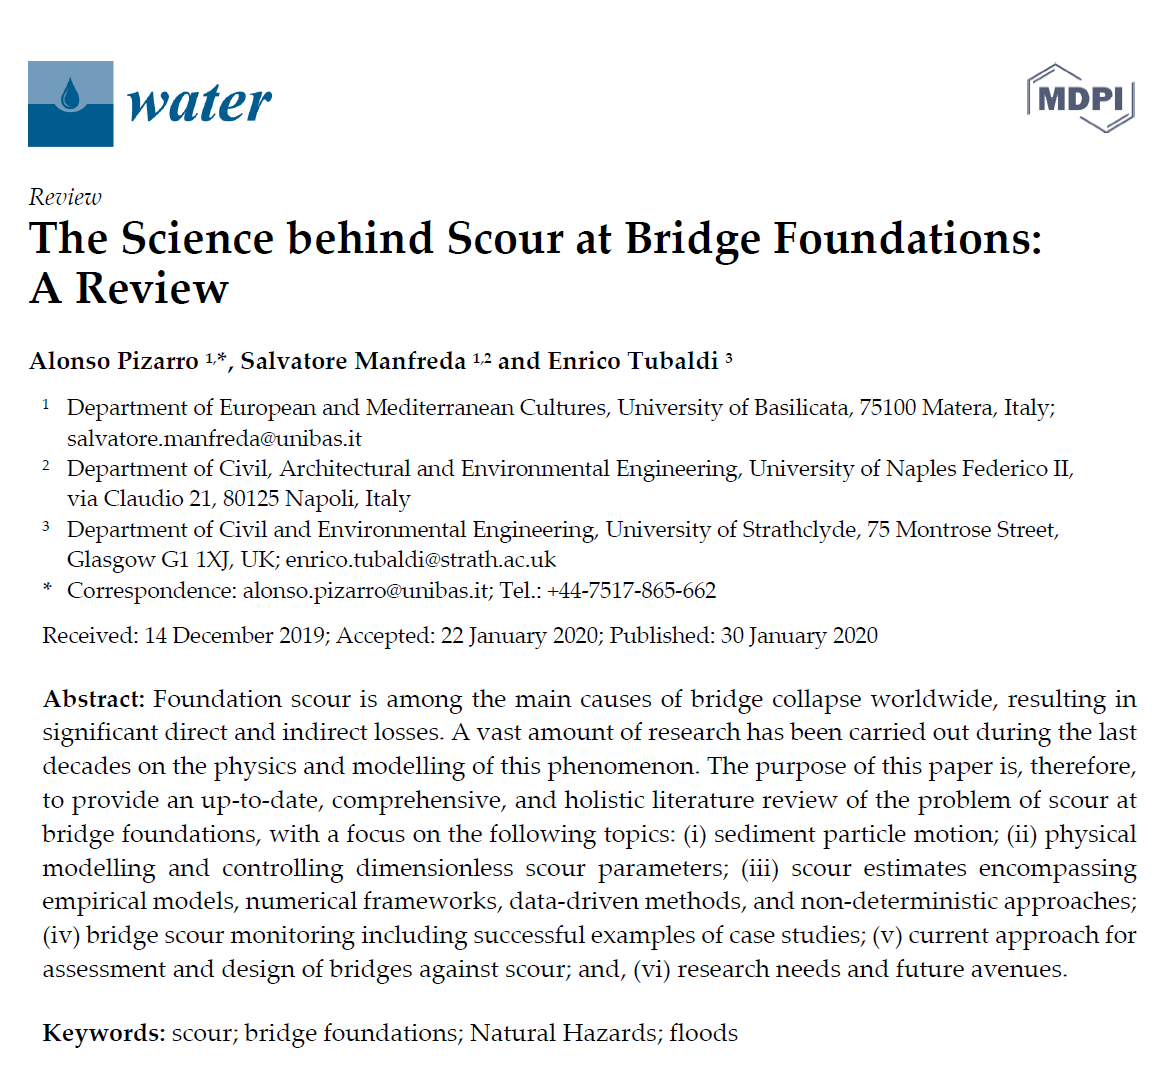 The Science behind Scour at Bridge Foundations: A Review